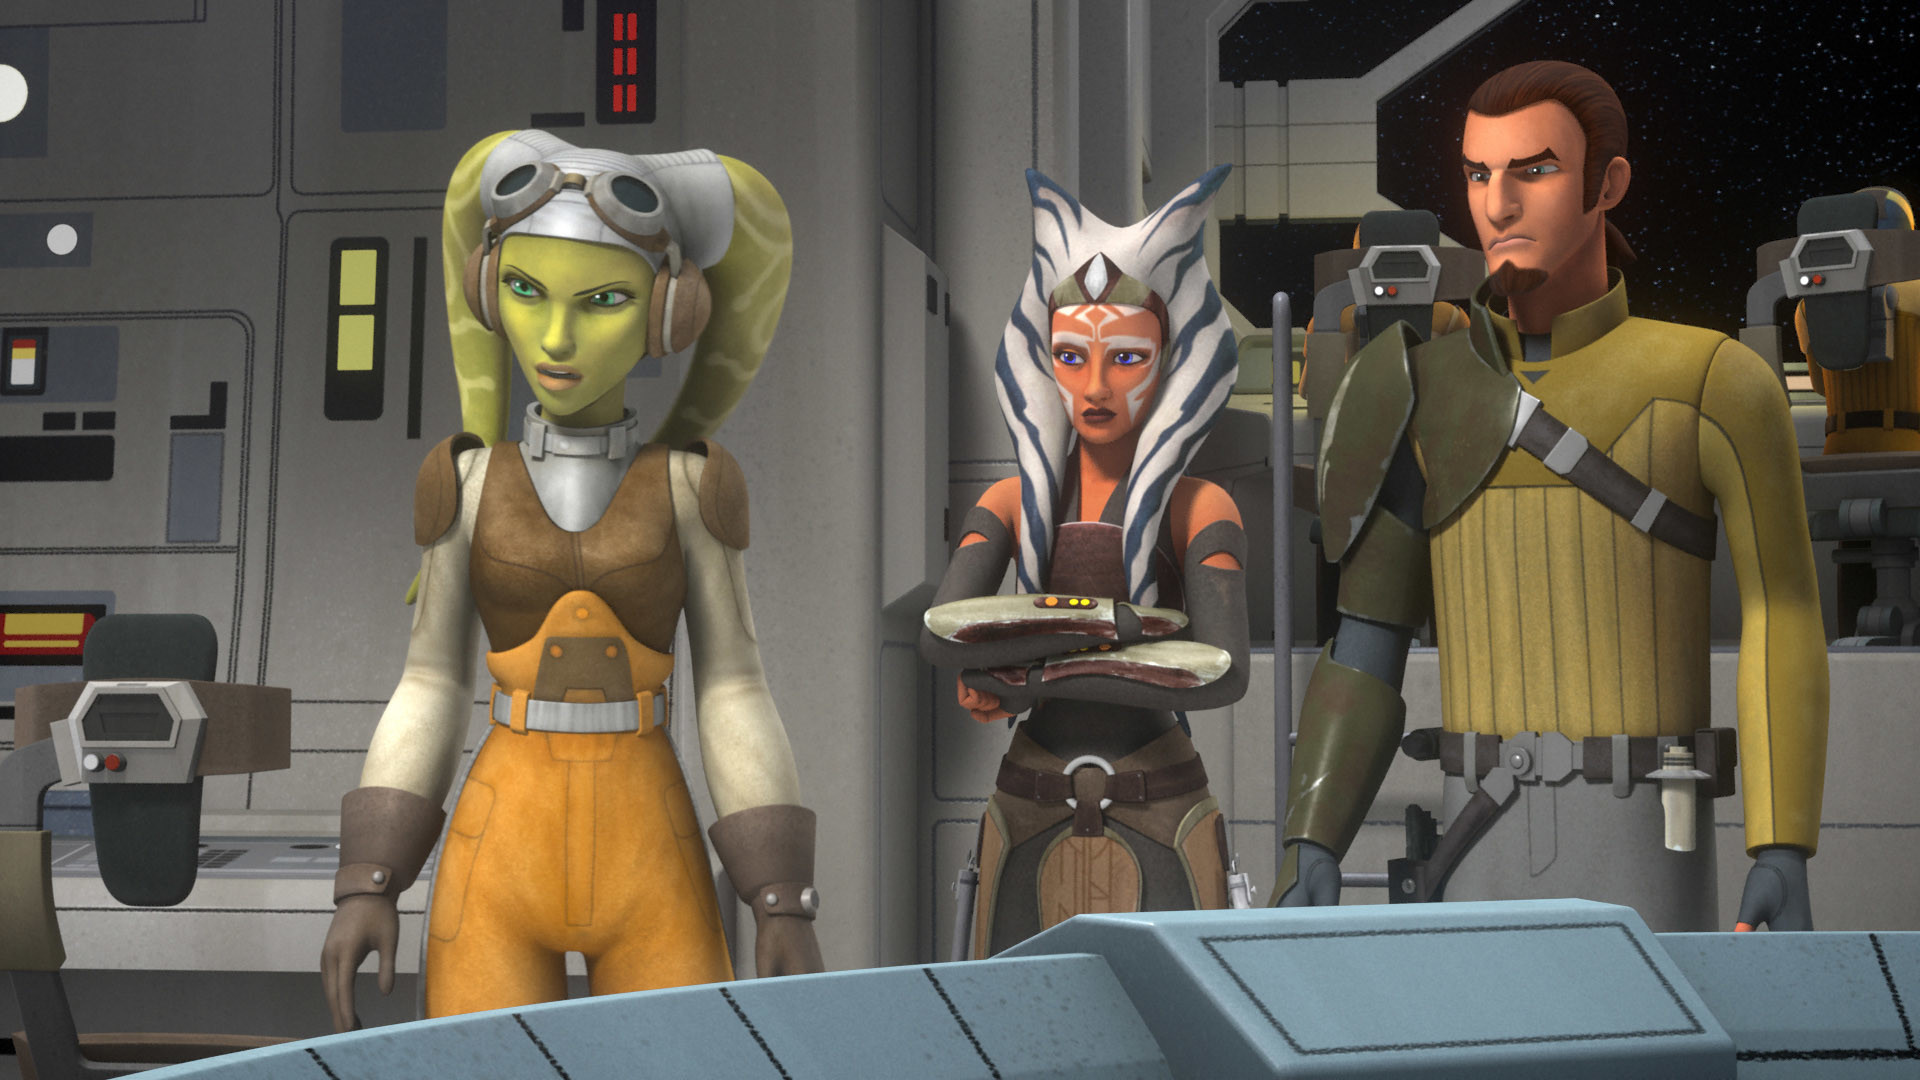 Rebels T.V. series. It's like clone wars only the animation feels less  natural and the